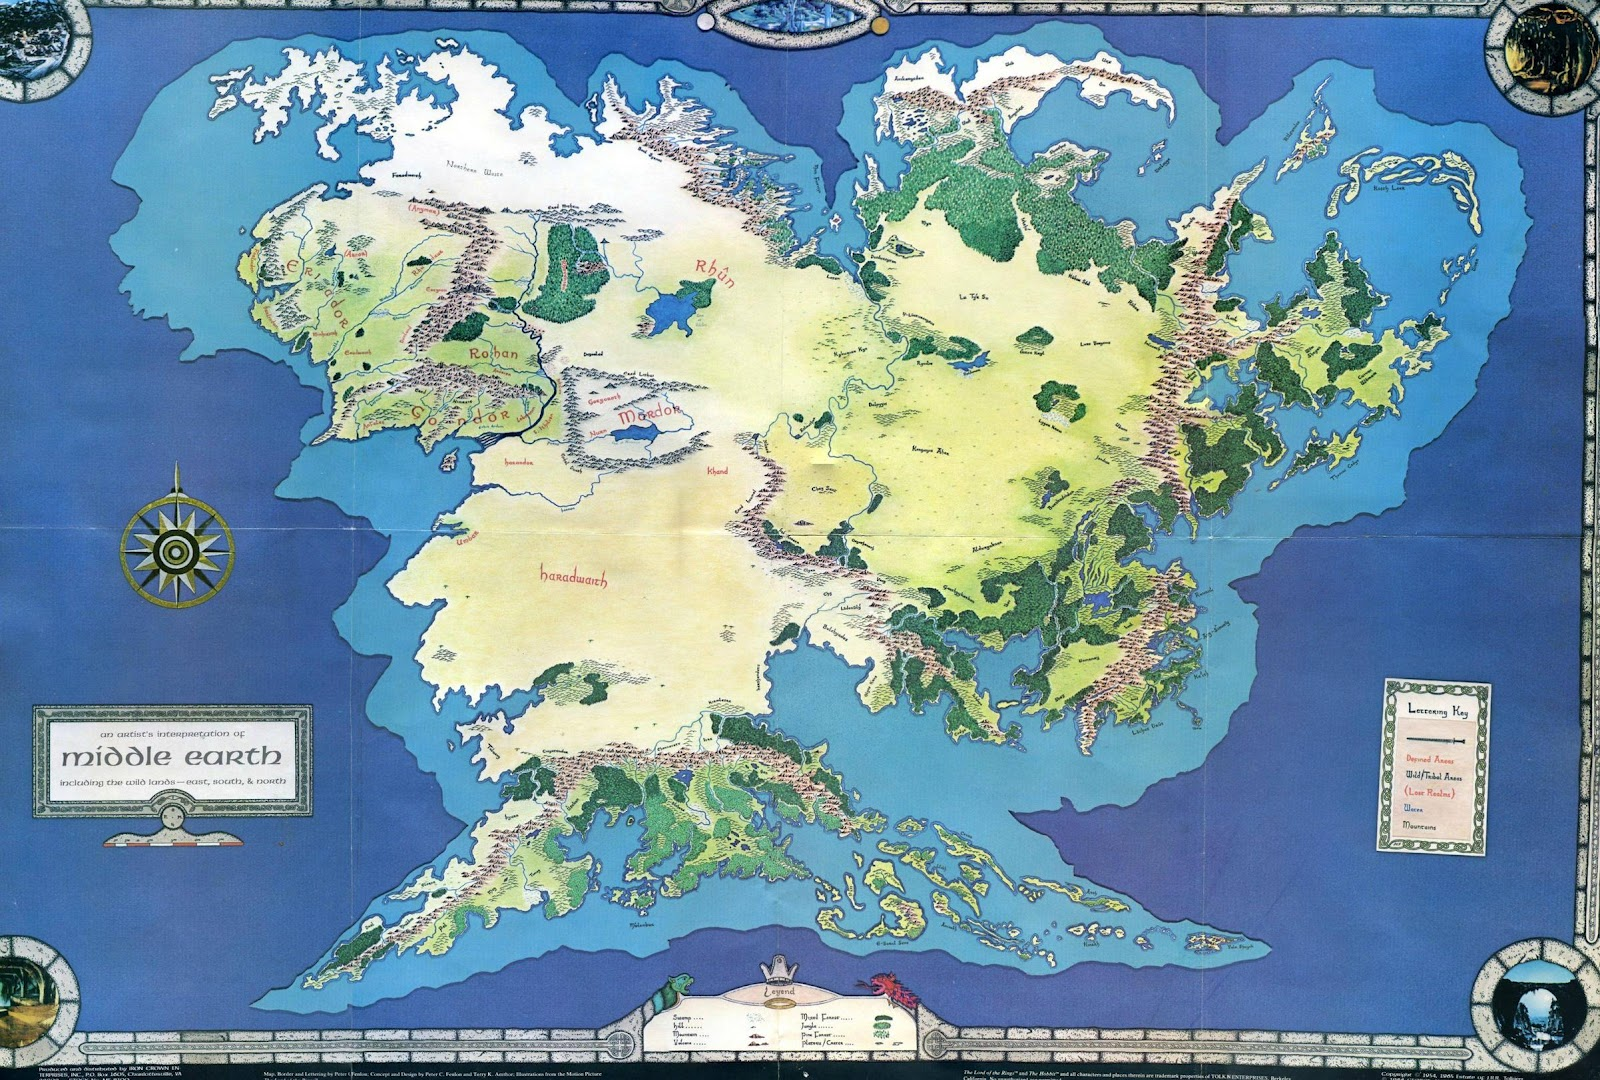 Map Of Arda Full maps of Arda in the Third Age? : lotr